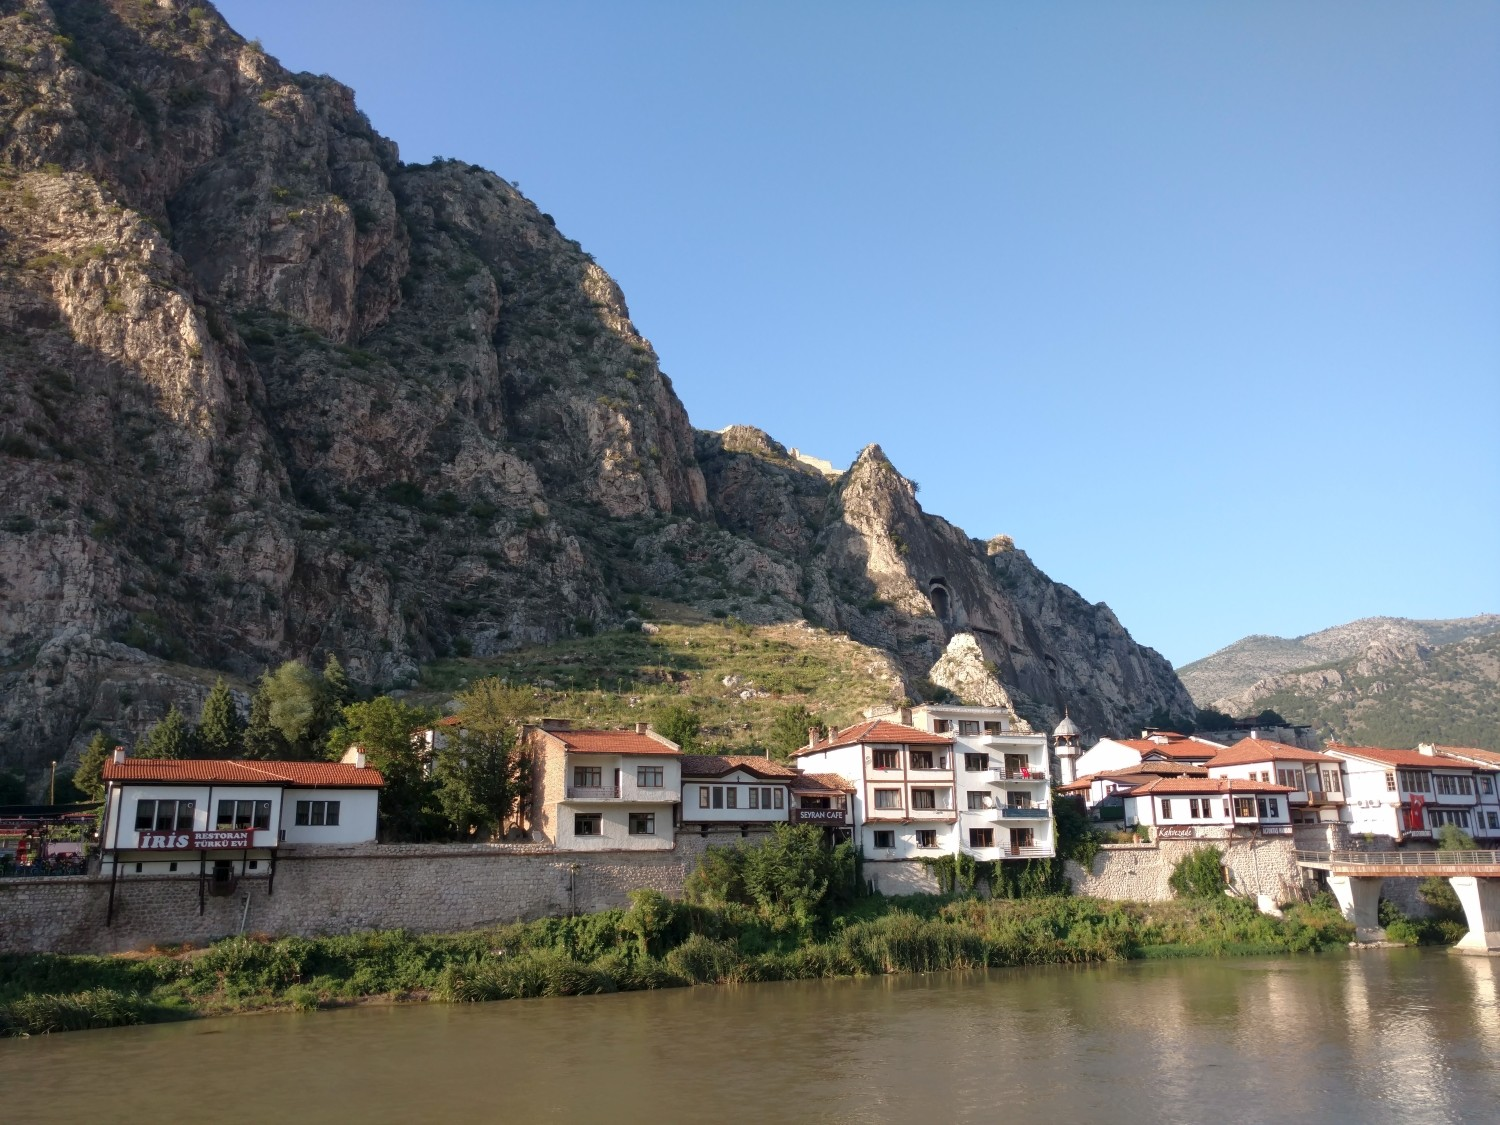 View of Amasya with the tombs of Pontic kings in the background